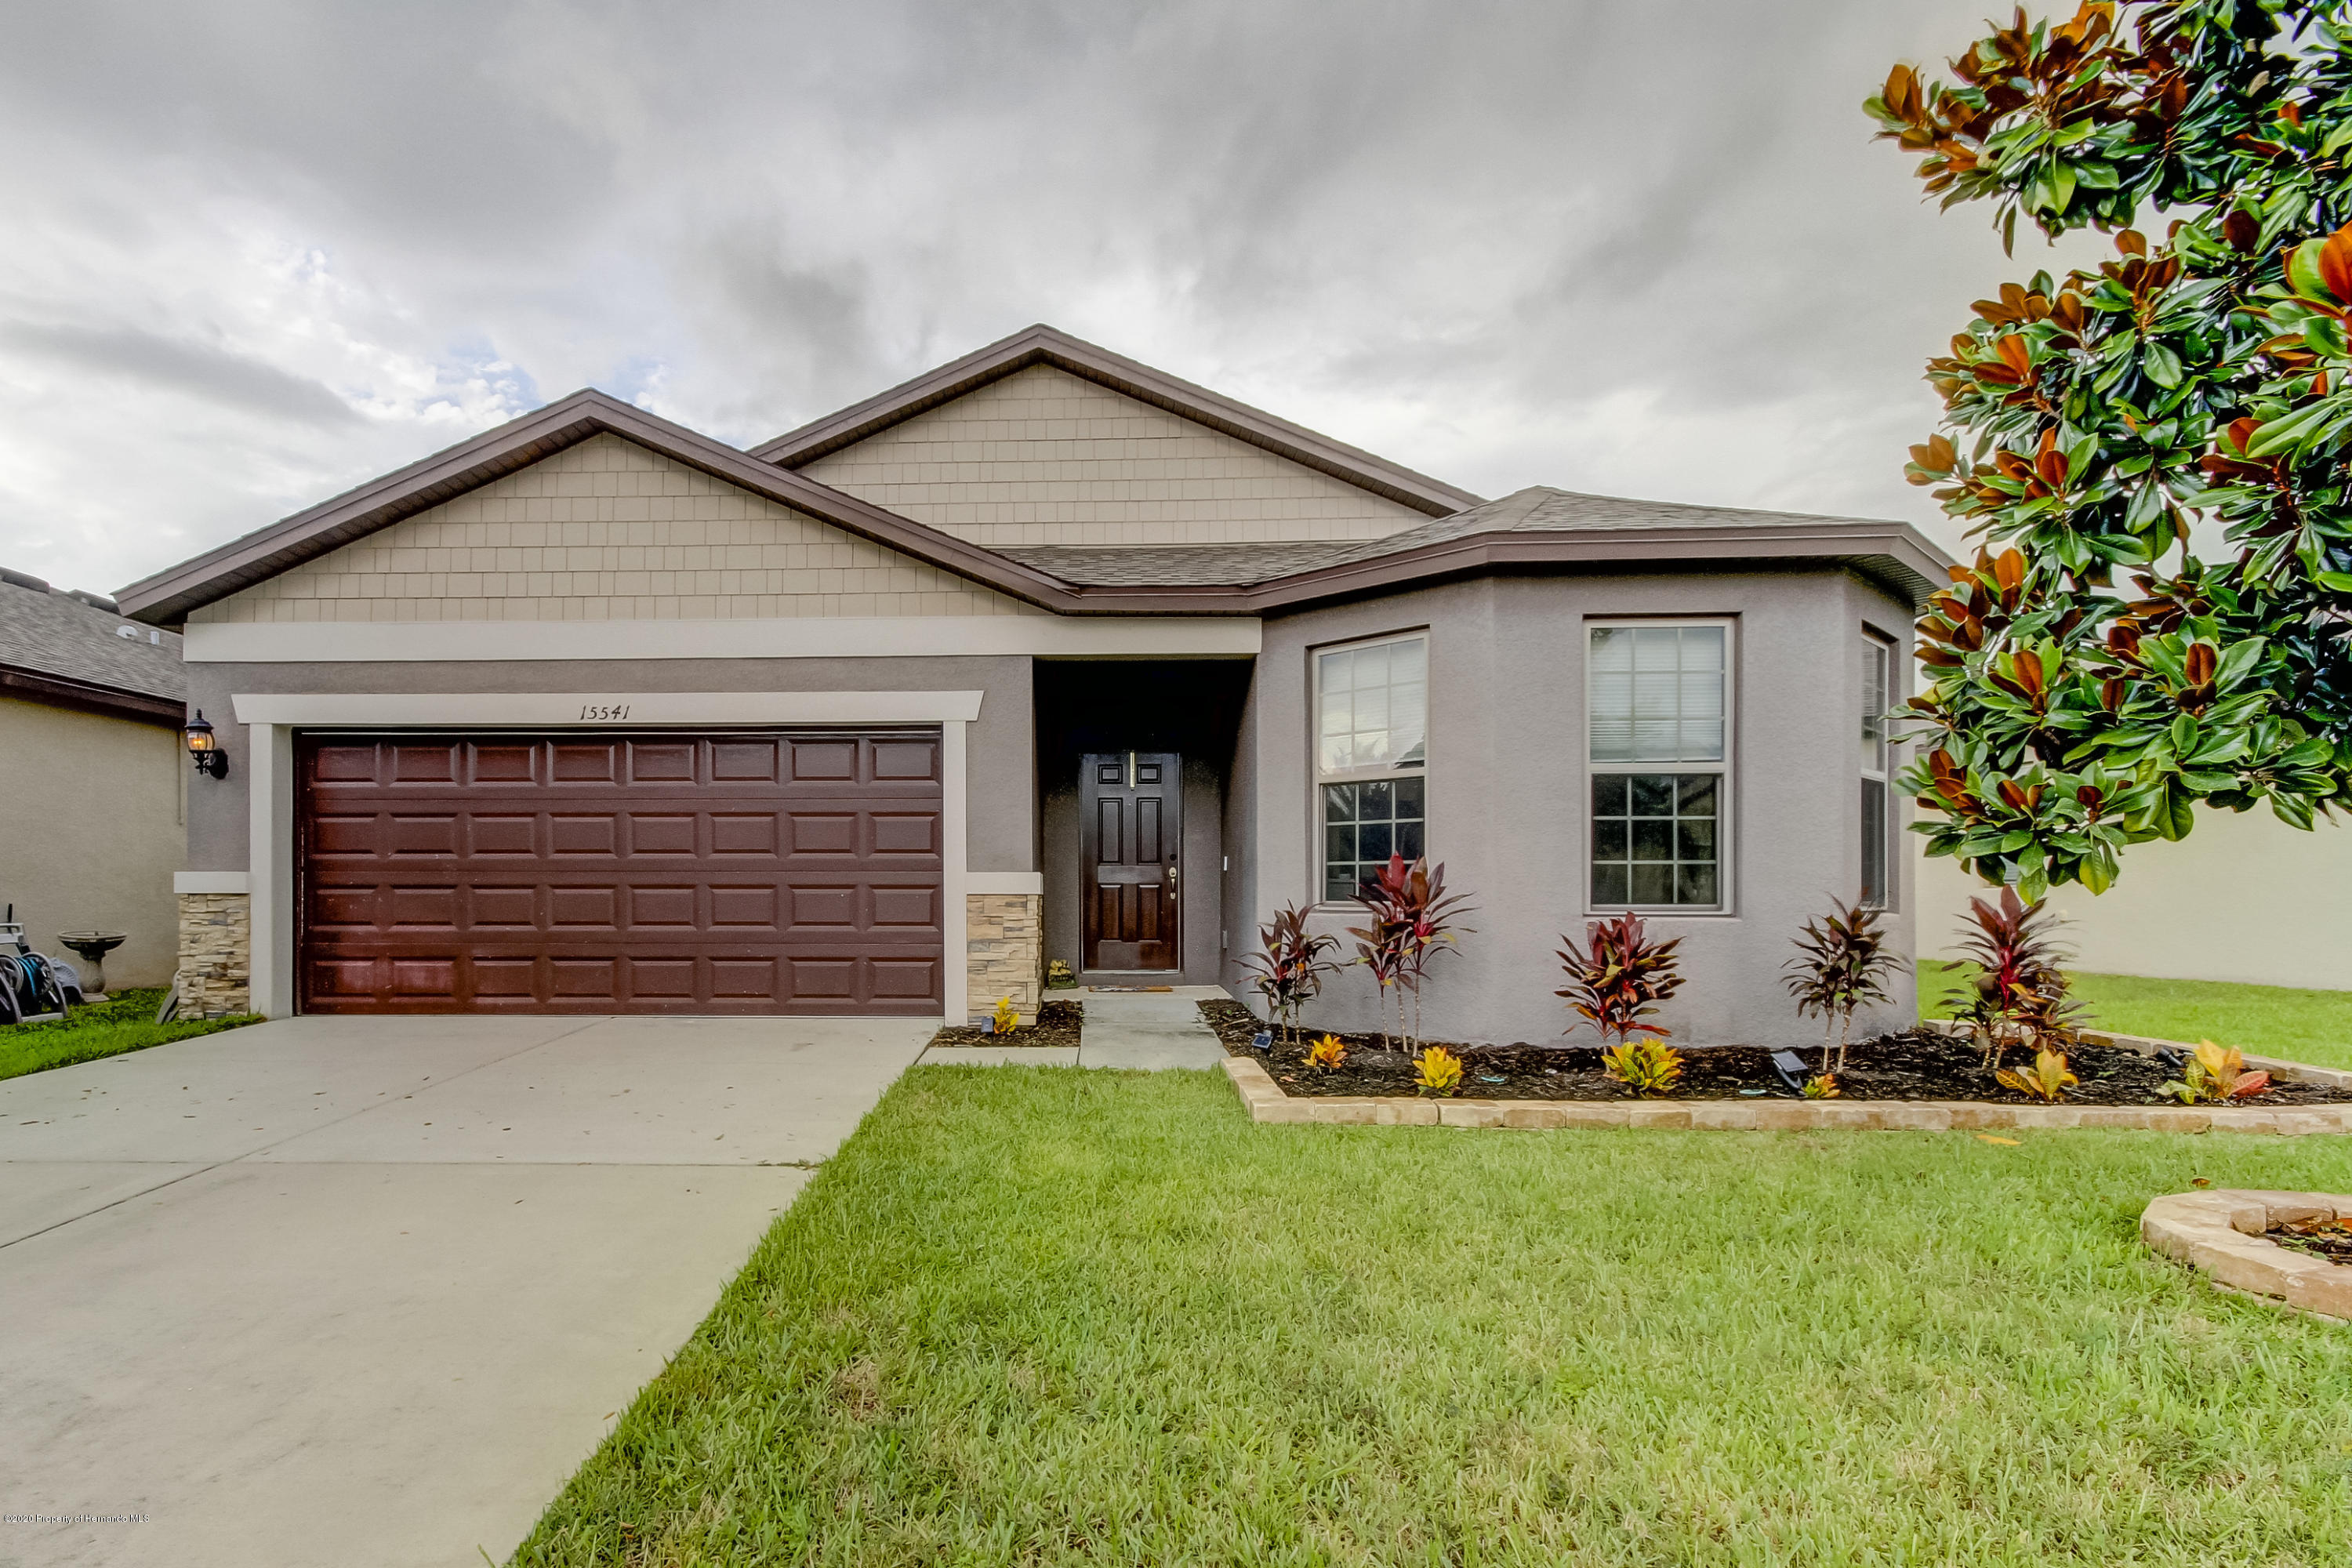 Details for 15541 Sword Lily Place, Brooksville, FL 34604